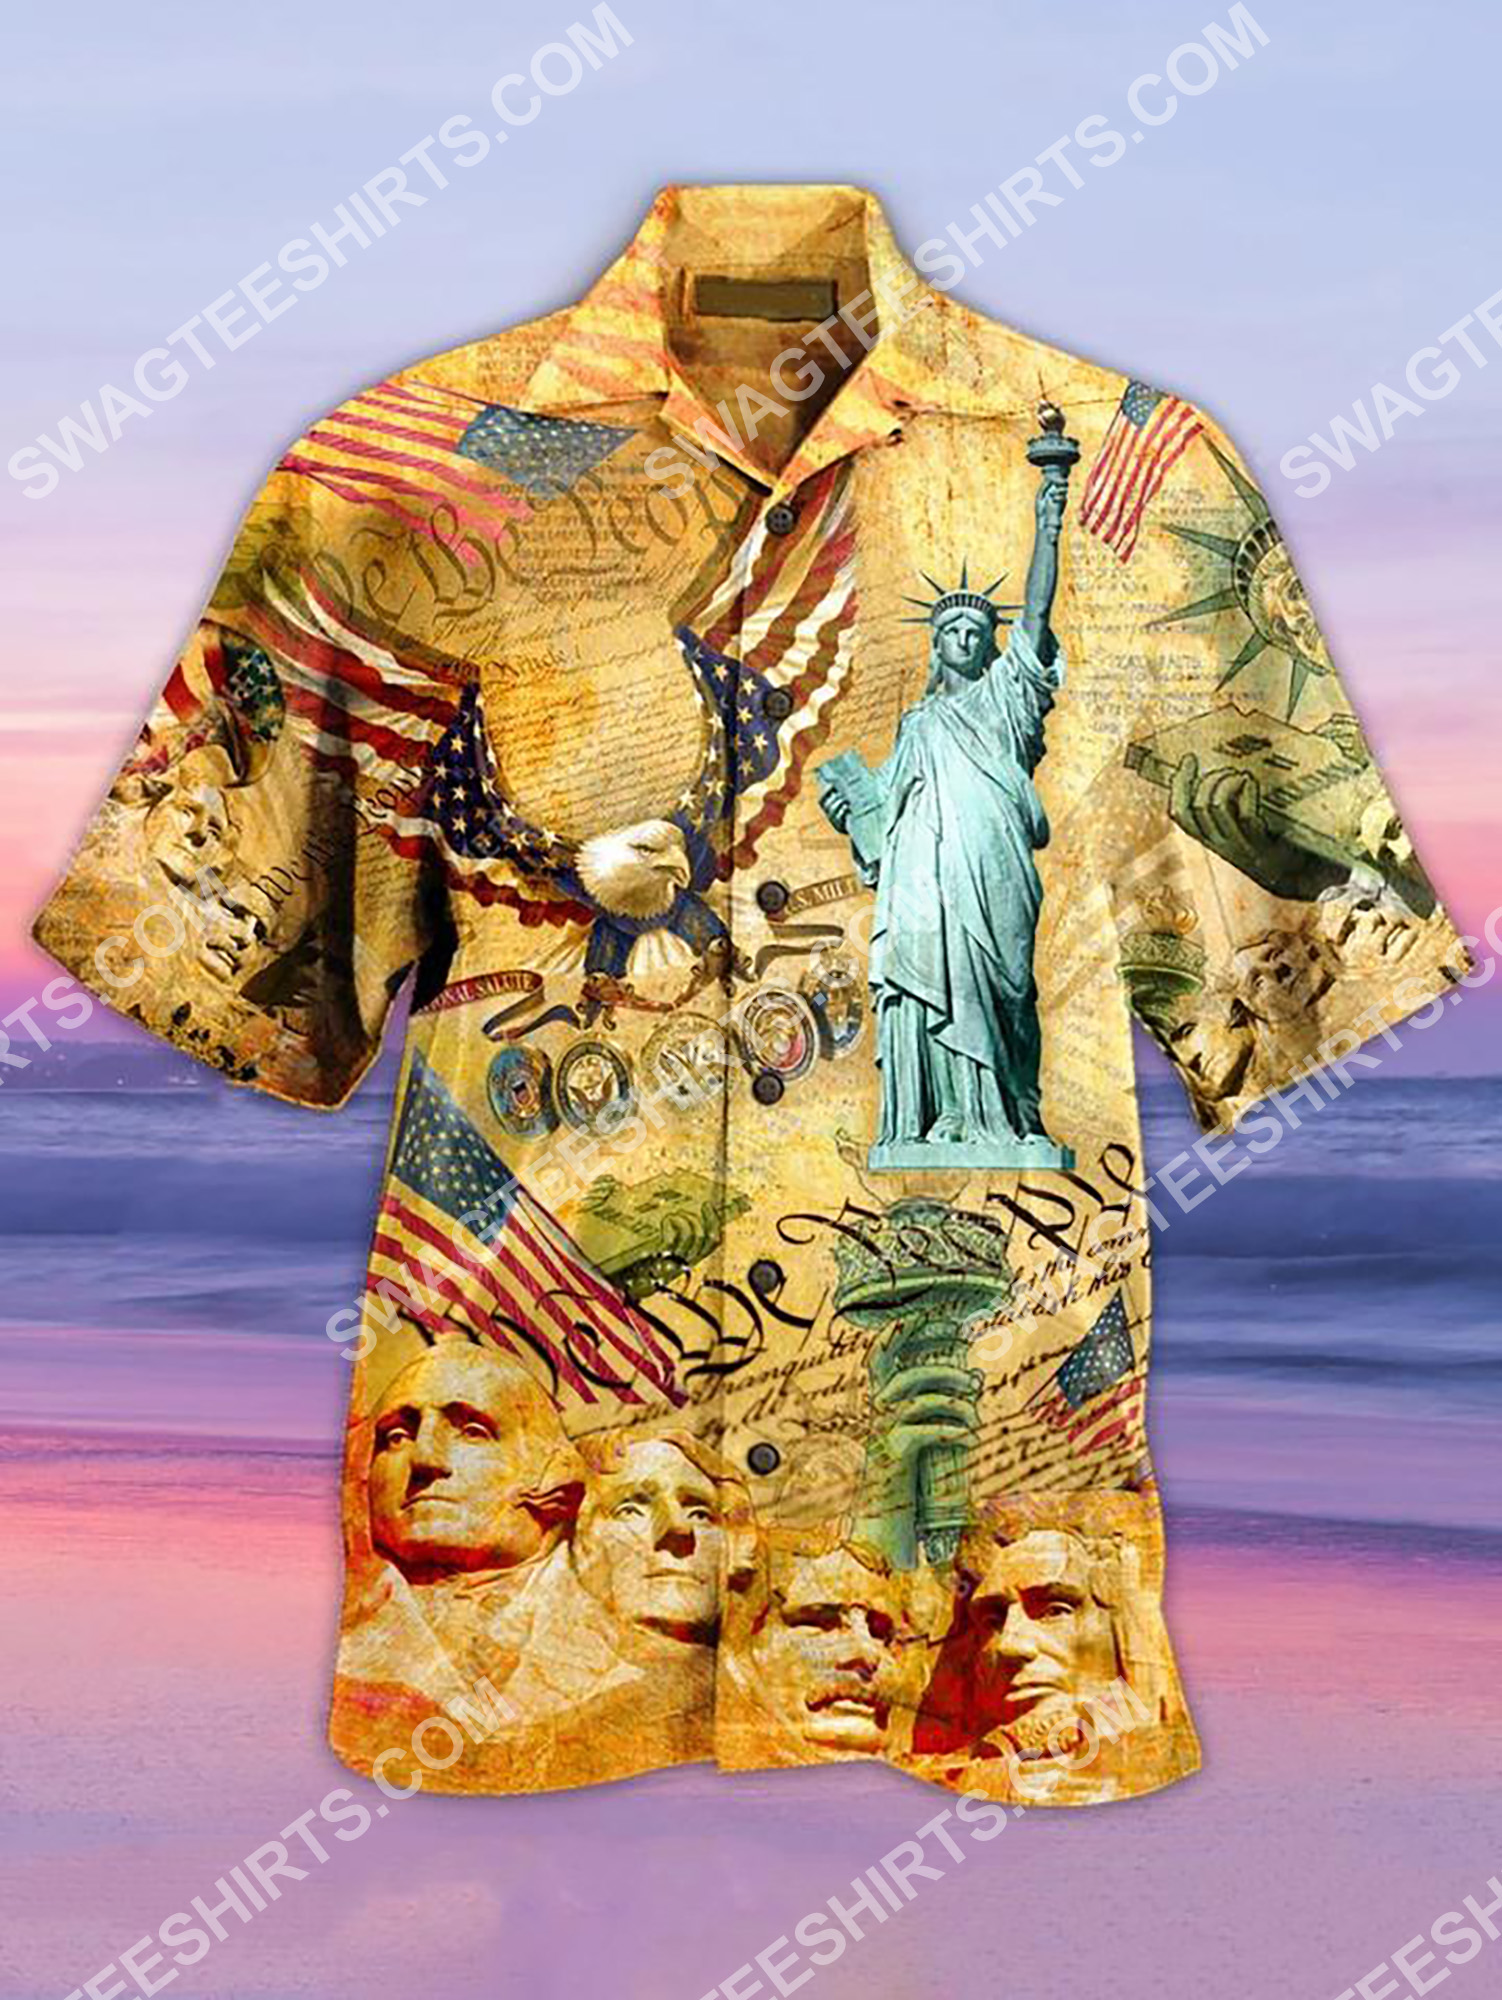 [Top-selling] america's independence day all over printing hawaiian shirt - maria